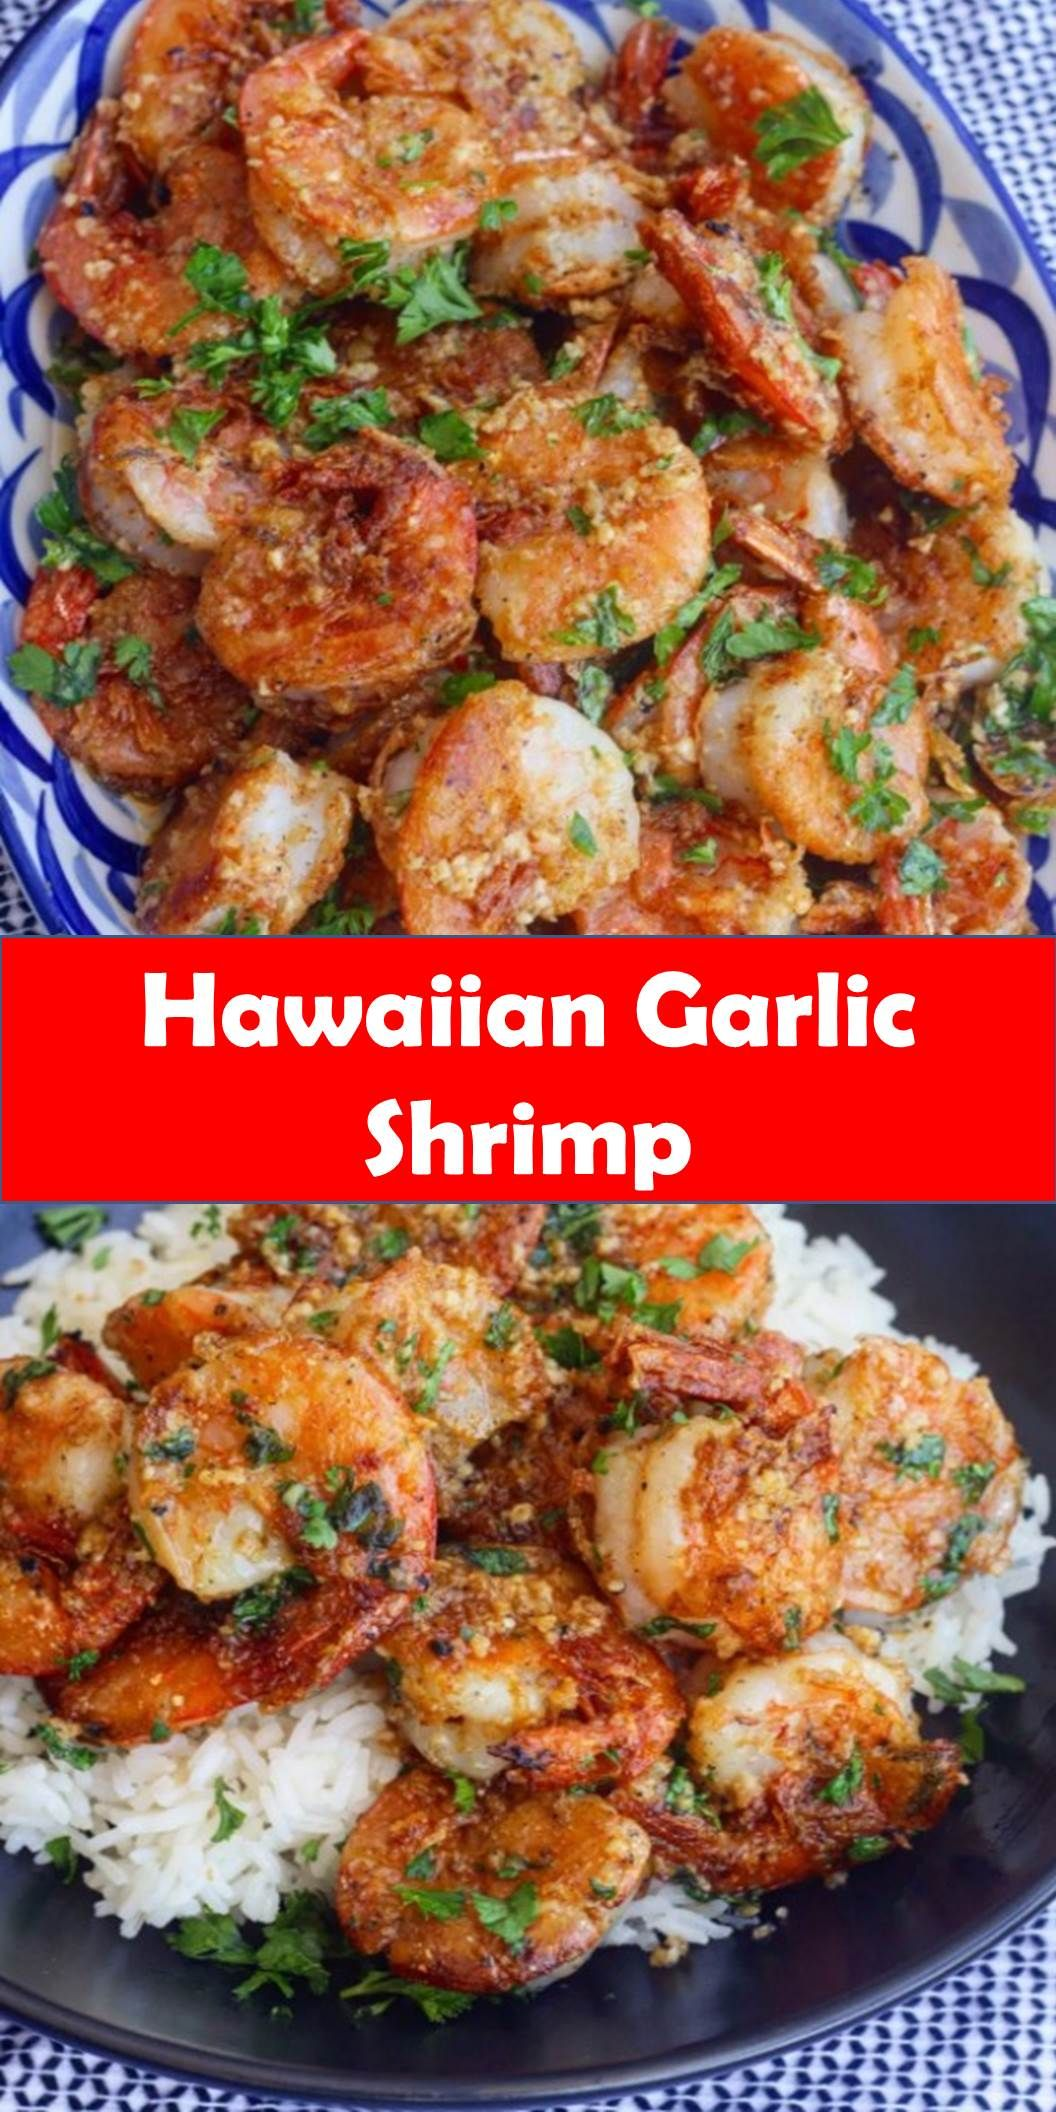 #Yummy #Hawaiian #Garlic #Shrimp Your family's favorite food and drink ! Hawaiian Garlic Shrimp Juicy prawns cooked in a garlicky buttery sauce, this Hawaiian Garlic Shrimp is just like the shrimp trucks you'd find in Hawaii. #Best #Vegas #Recipe! #BestVegasRecipe! #hawaiianfoodrecipes